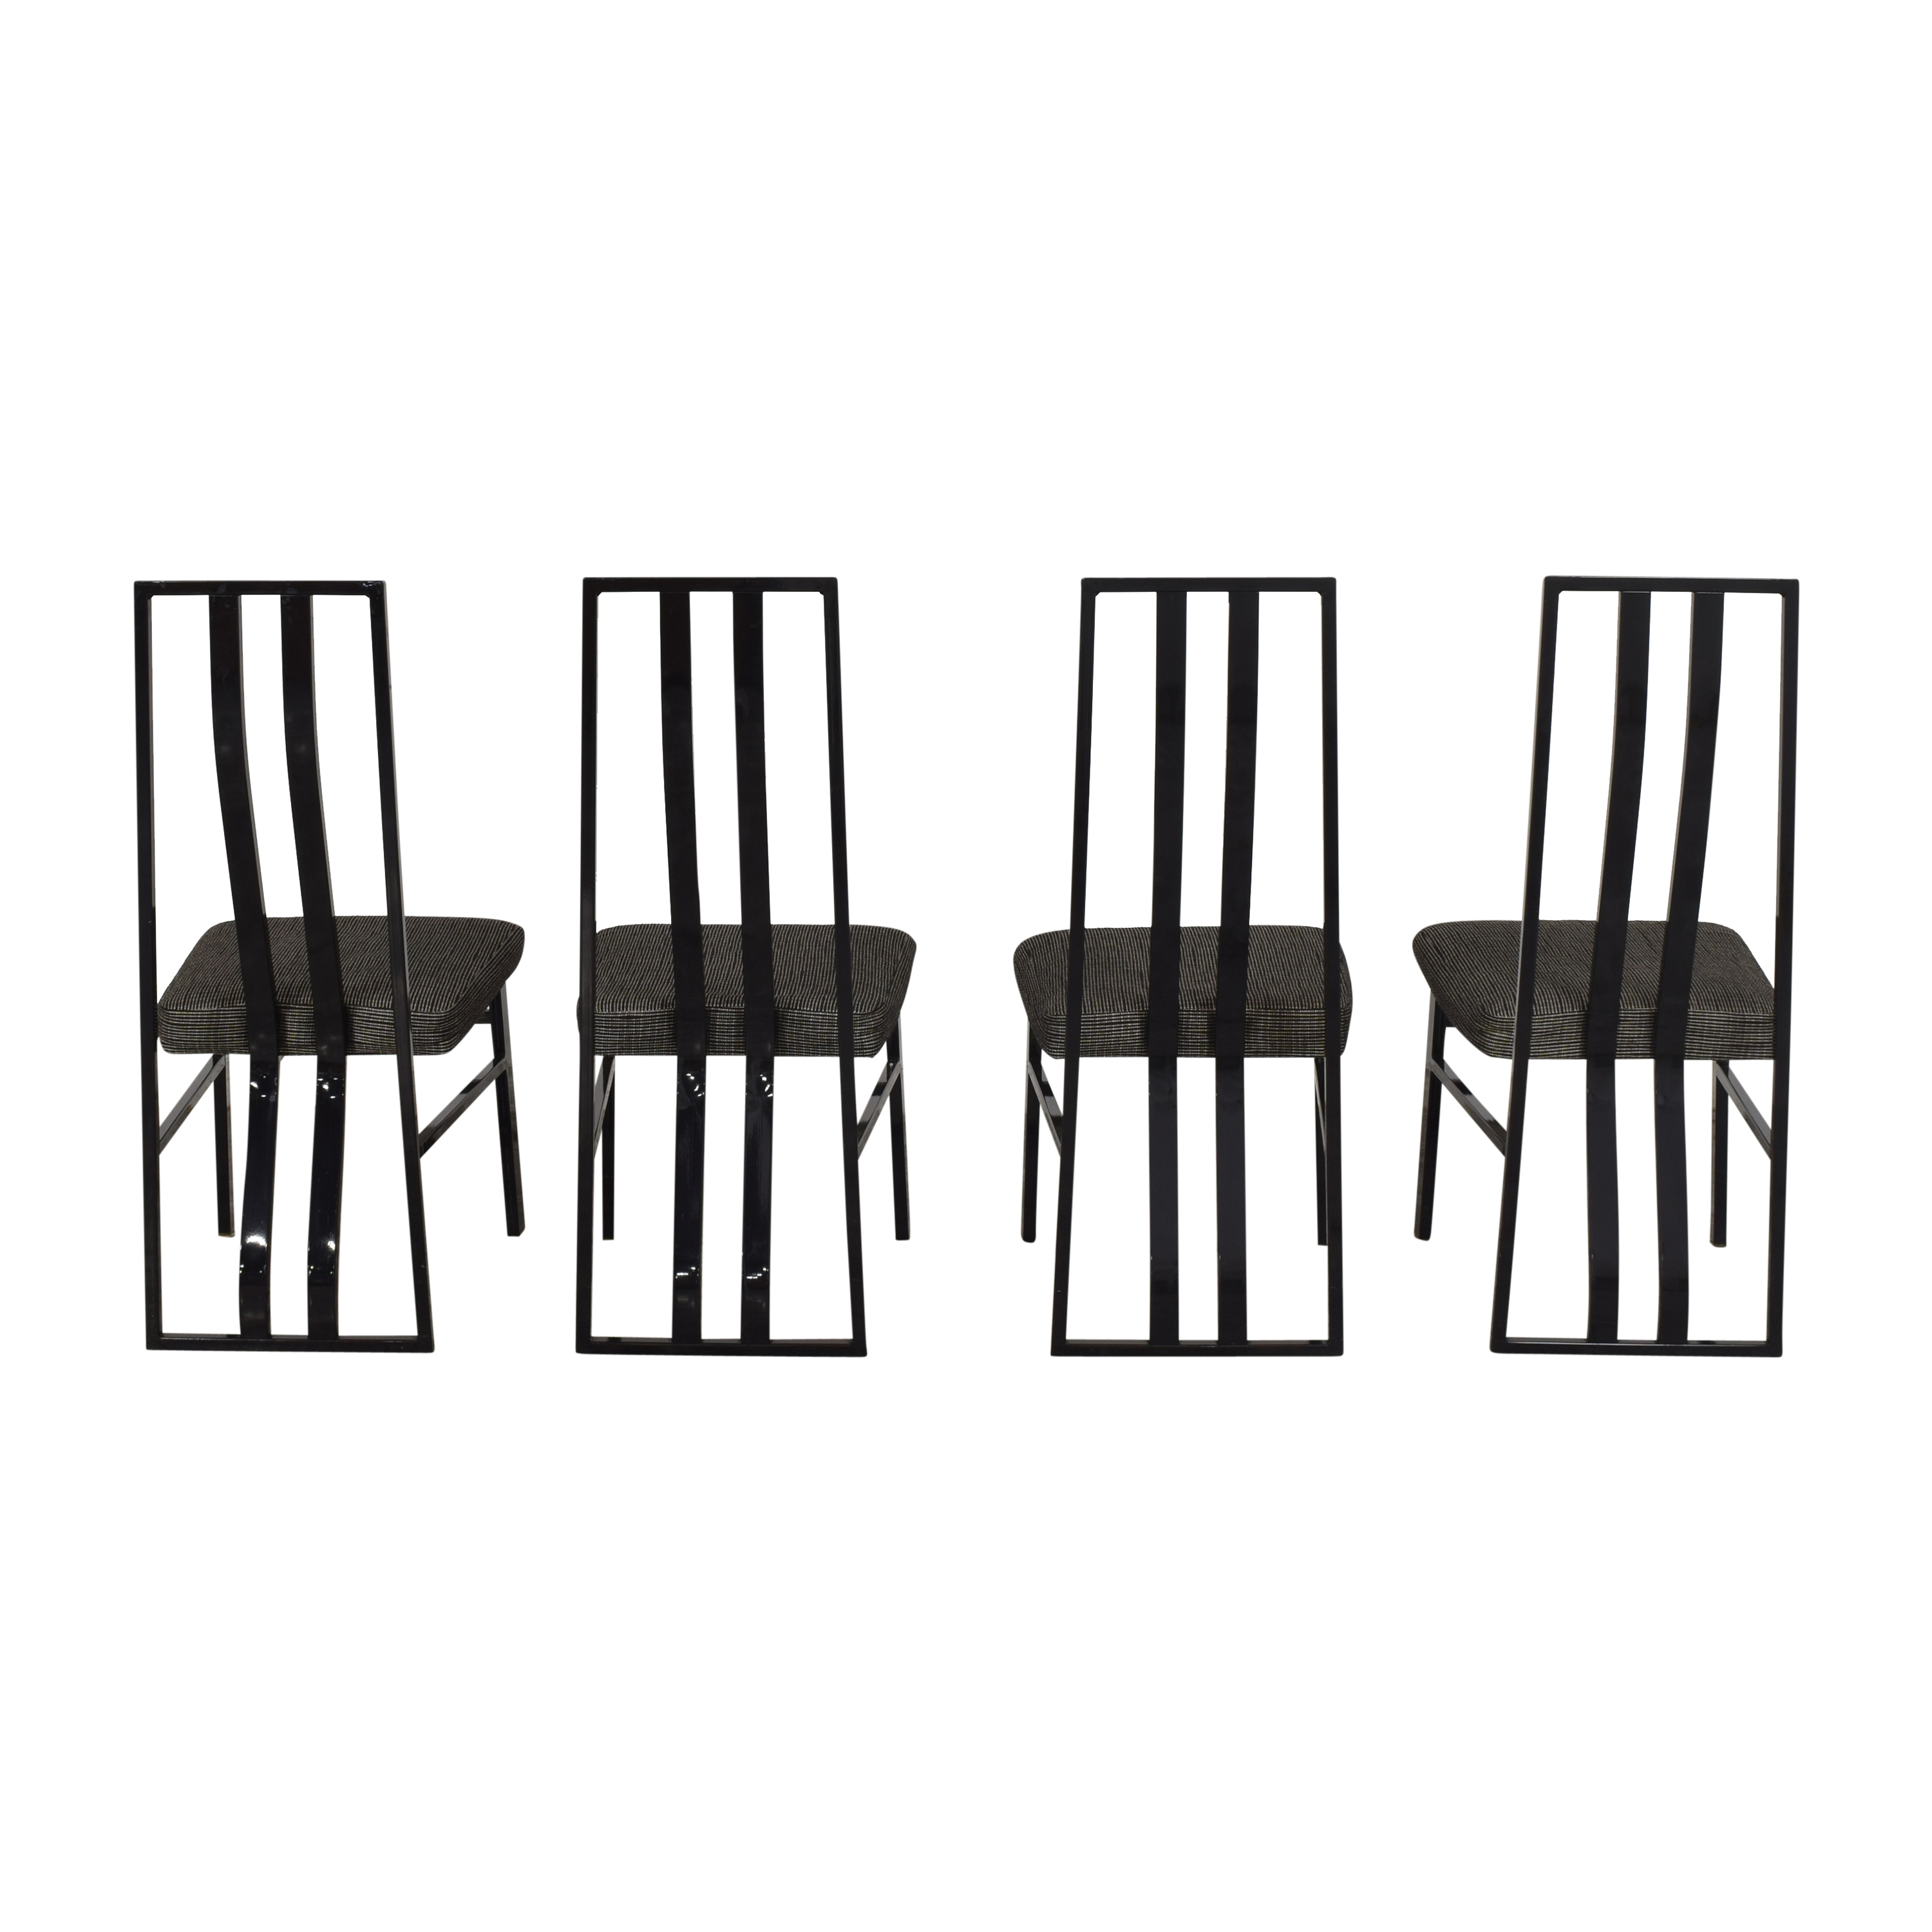 Cal Style Furniture Manufacturing Company Cal-Style Mfg Co Modern High Back Dining Chairs black and gray